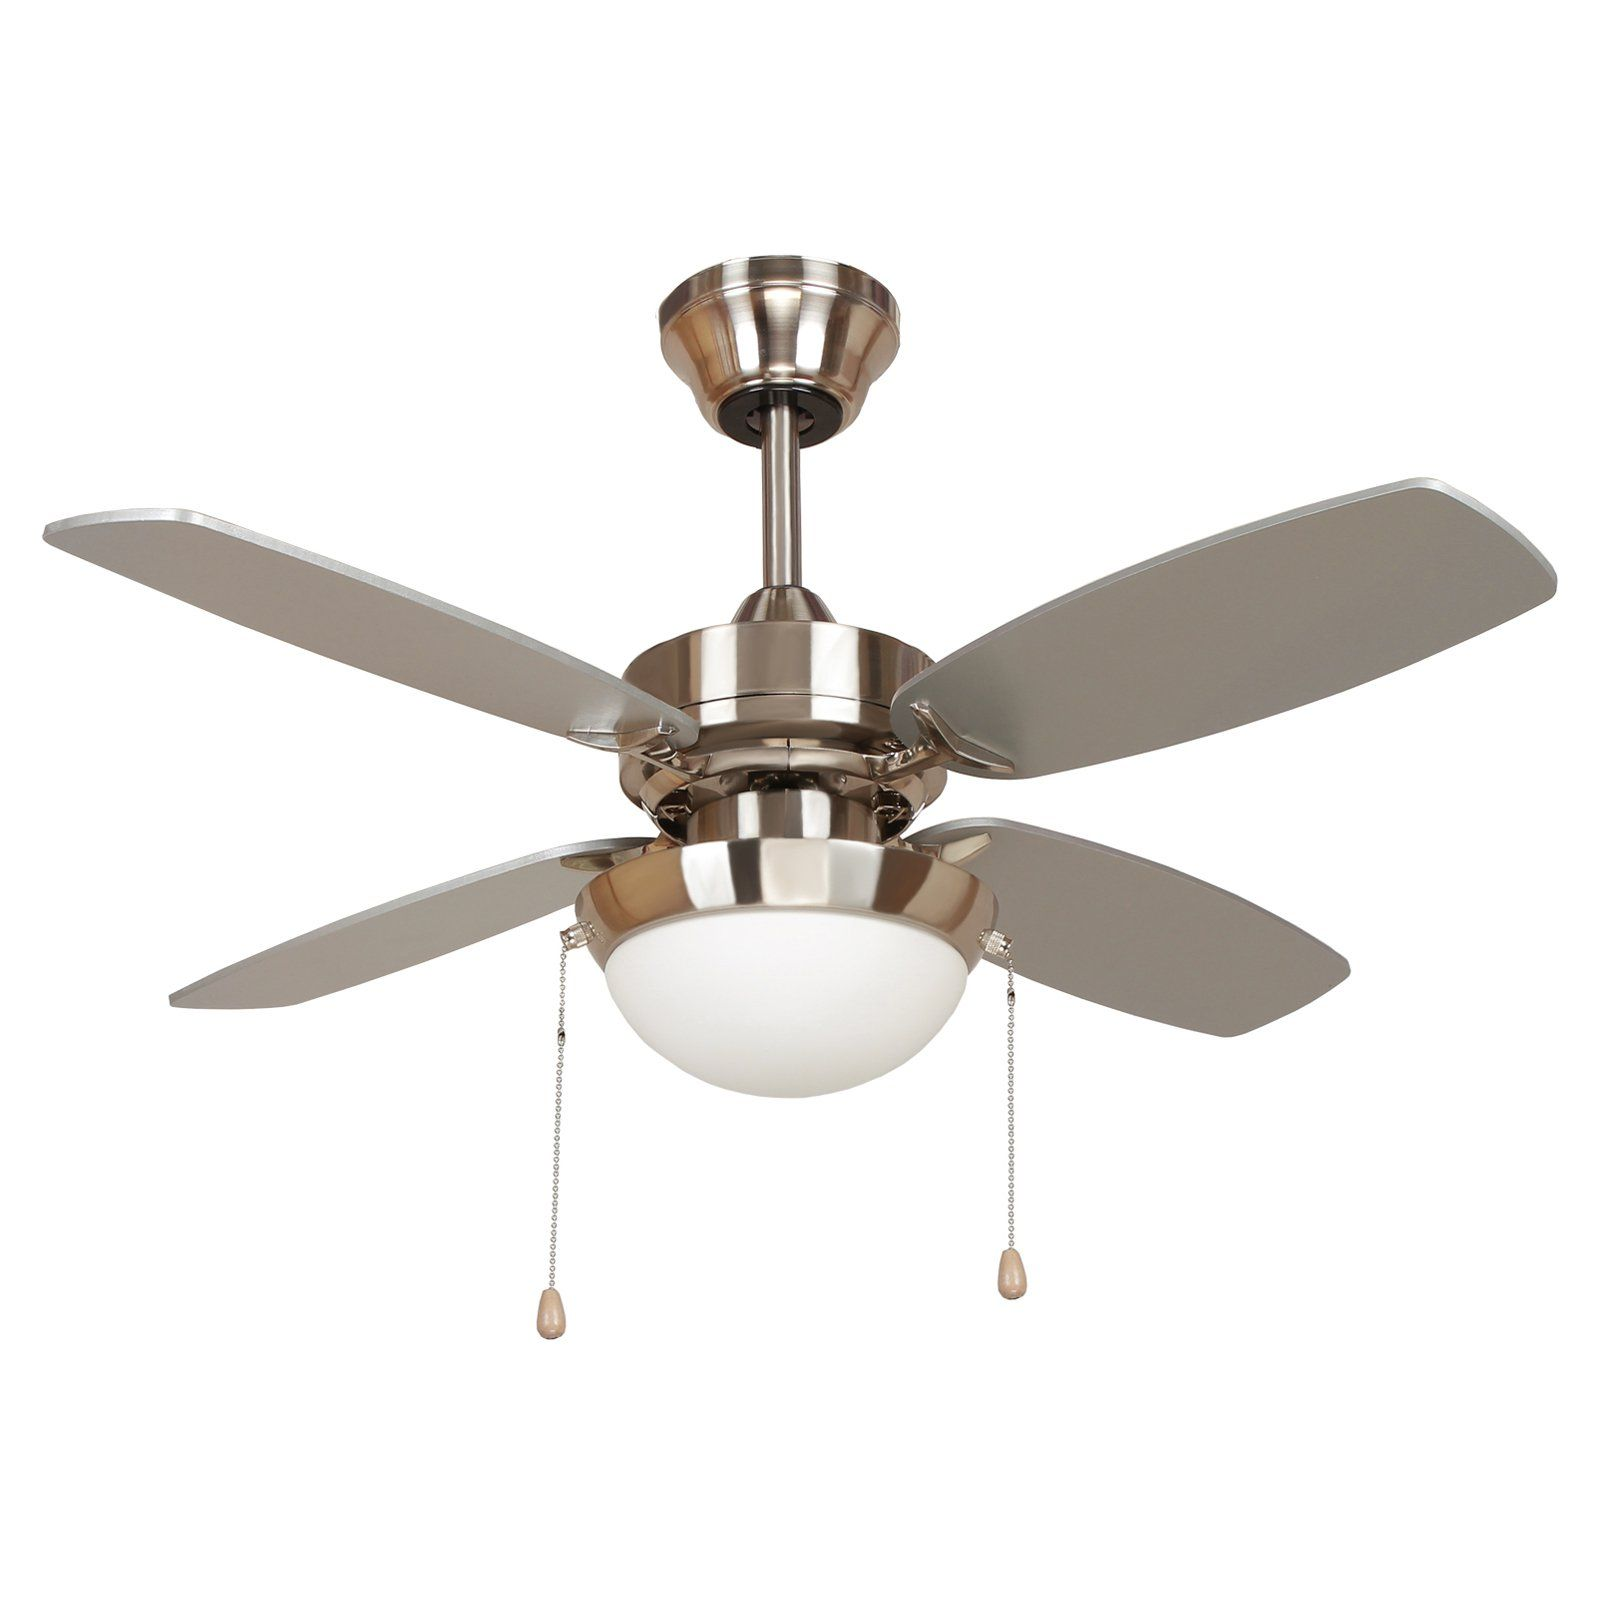 Yosemite home decor ashley 36 in indoor ceiling fan with